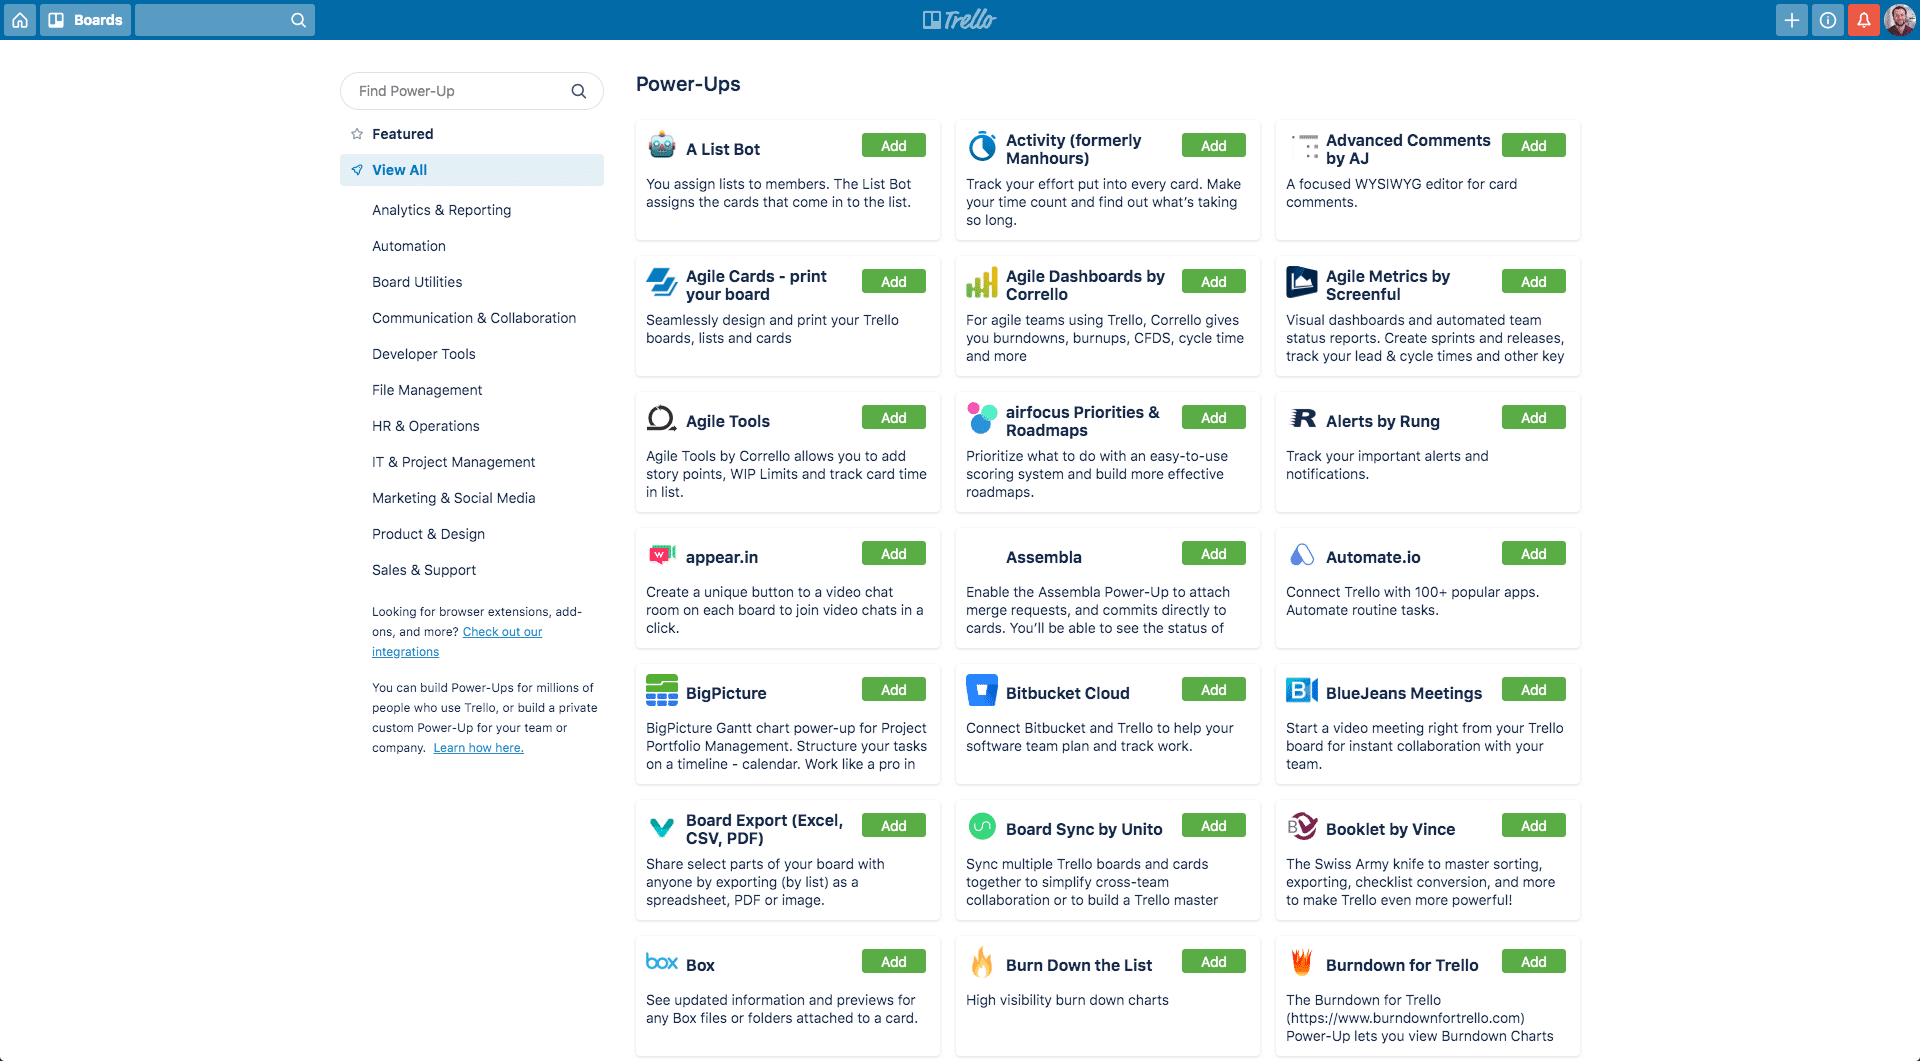 Power-ups Trello